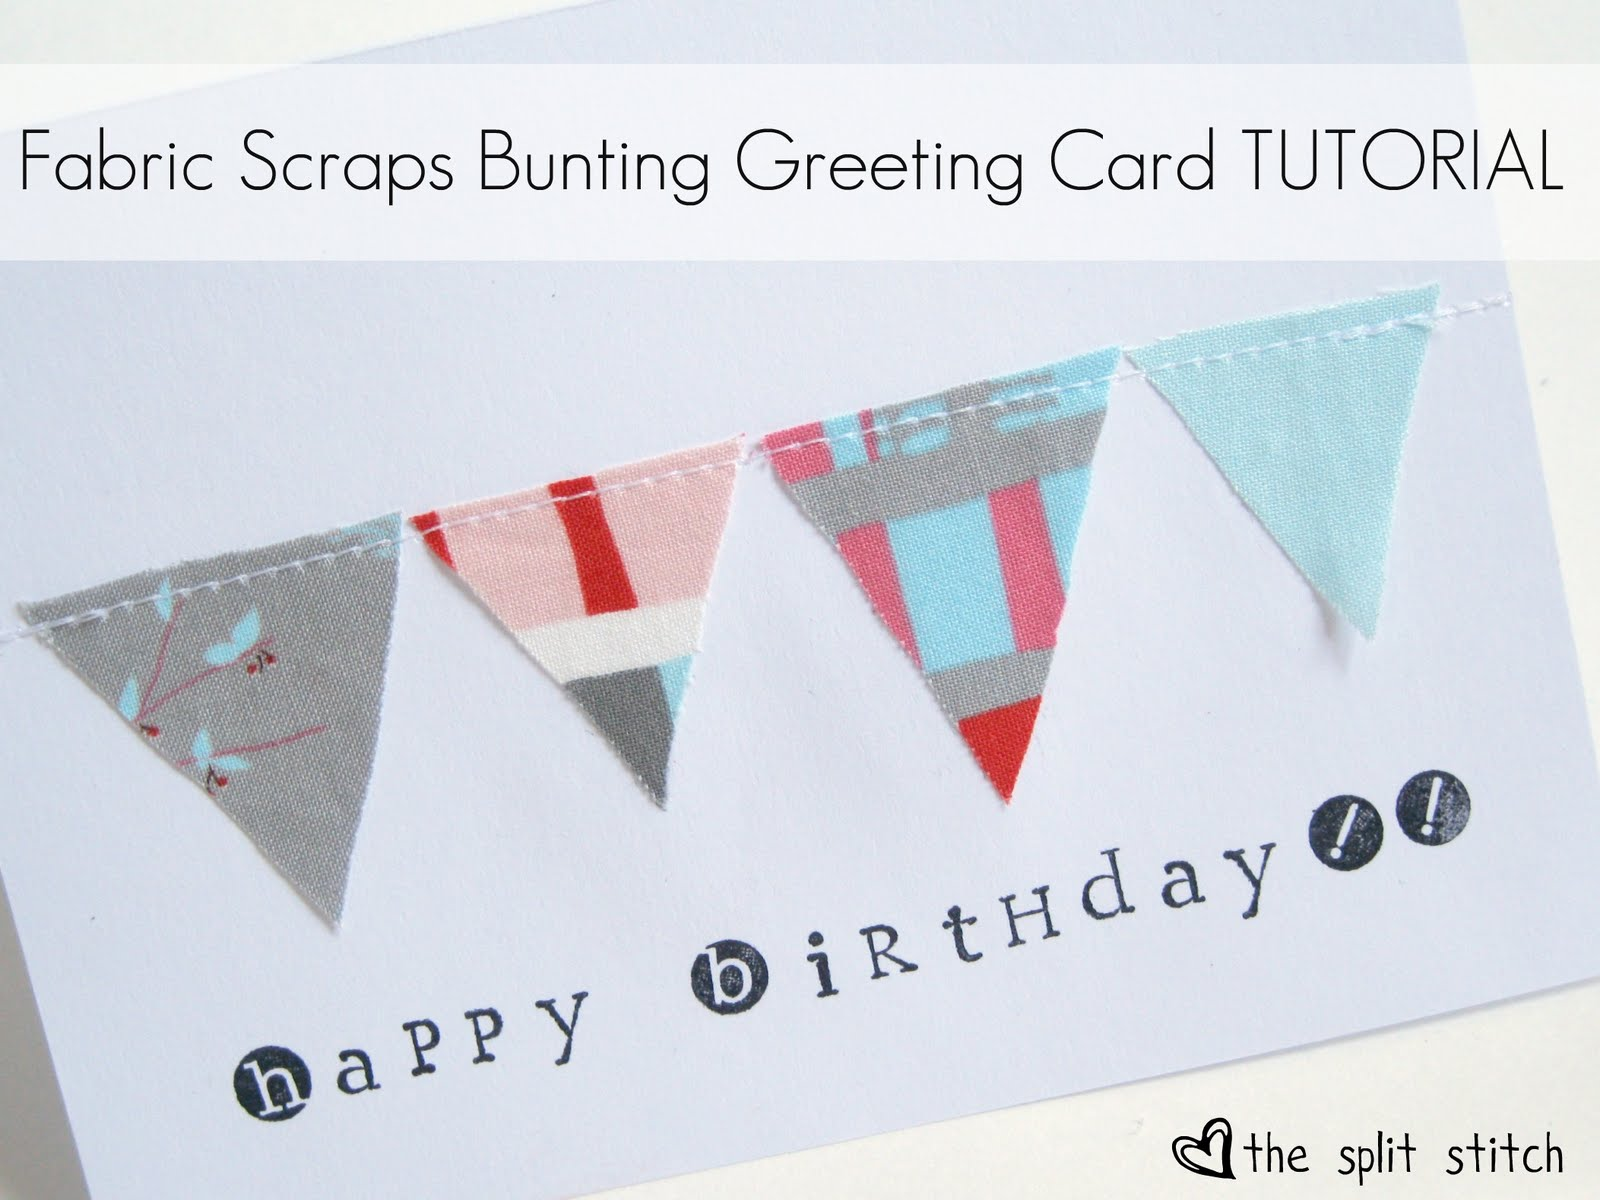 x-x-x Fabric Scraps Bunting Greeting Card Tutorial x-x-x. Supplies.